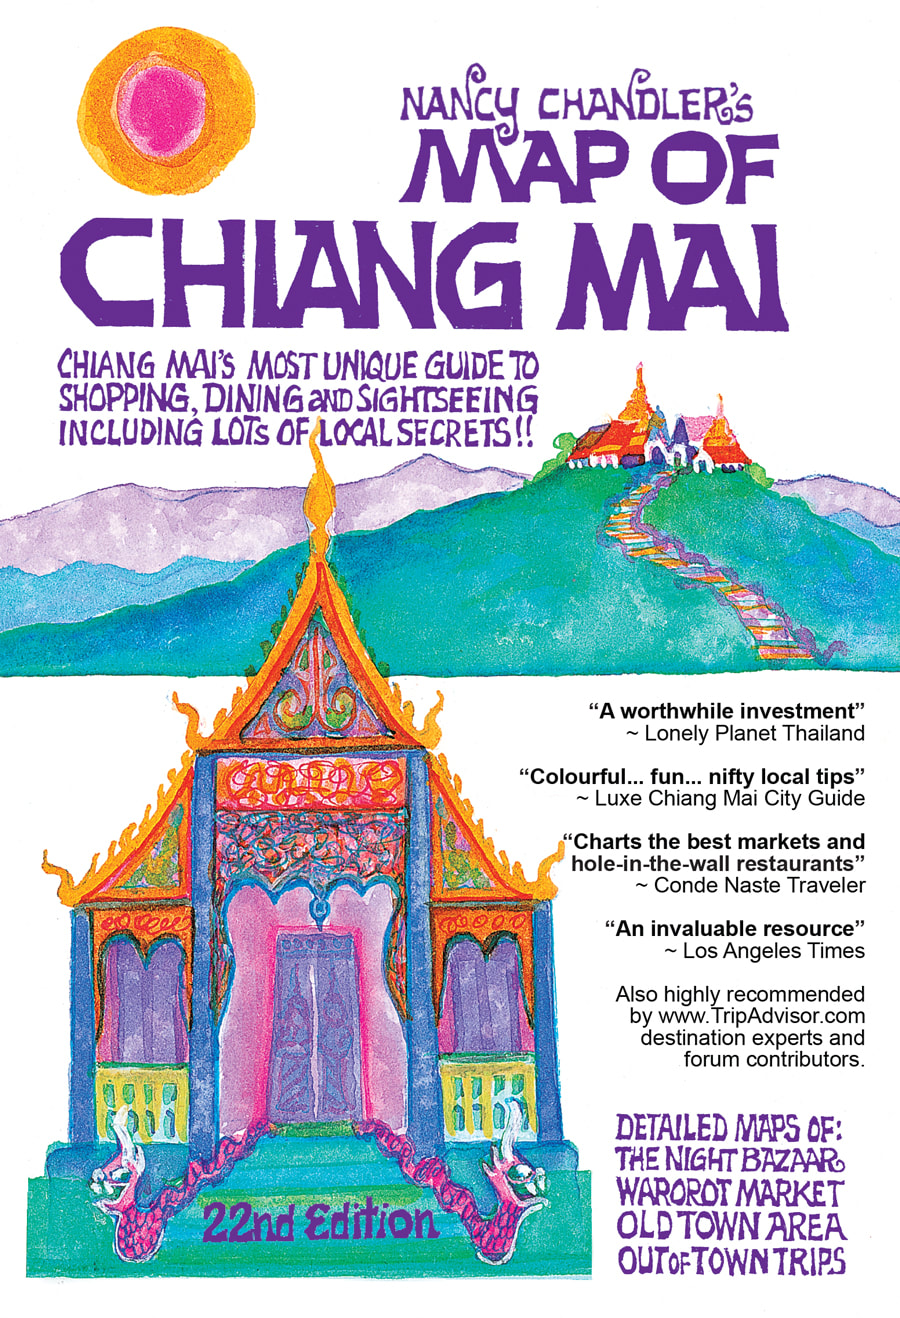 Nancy Chandler's Paper Map of Chiang Mai, 21st Edition